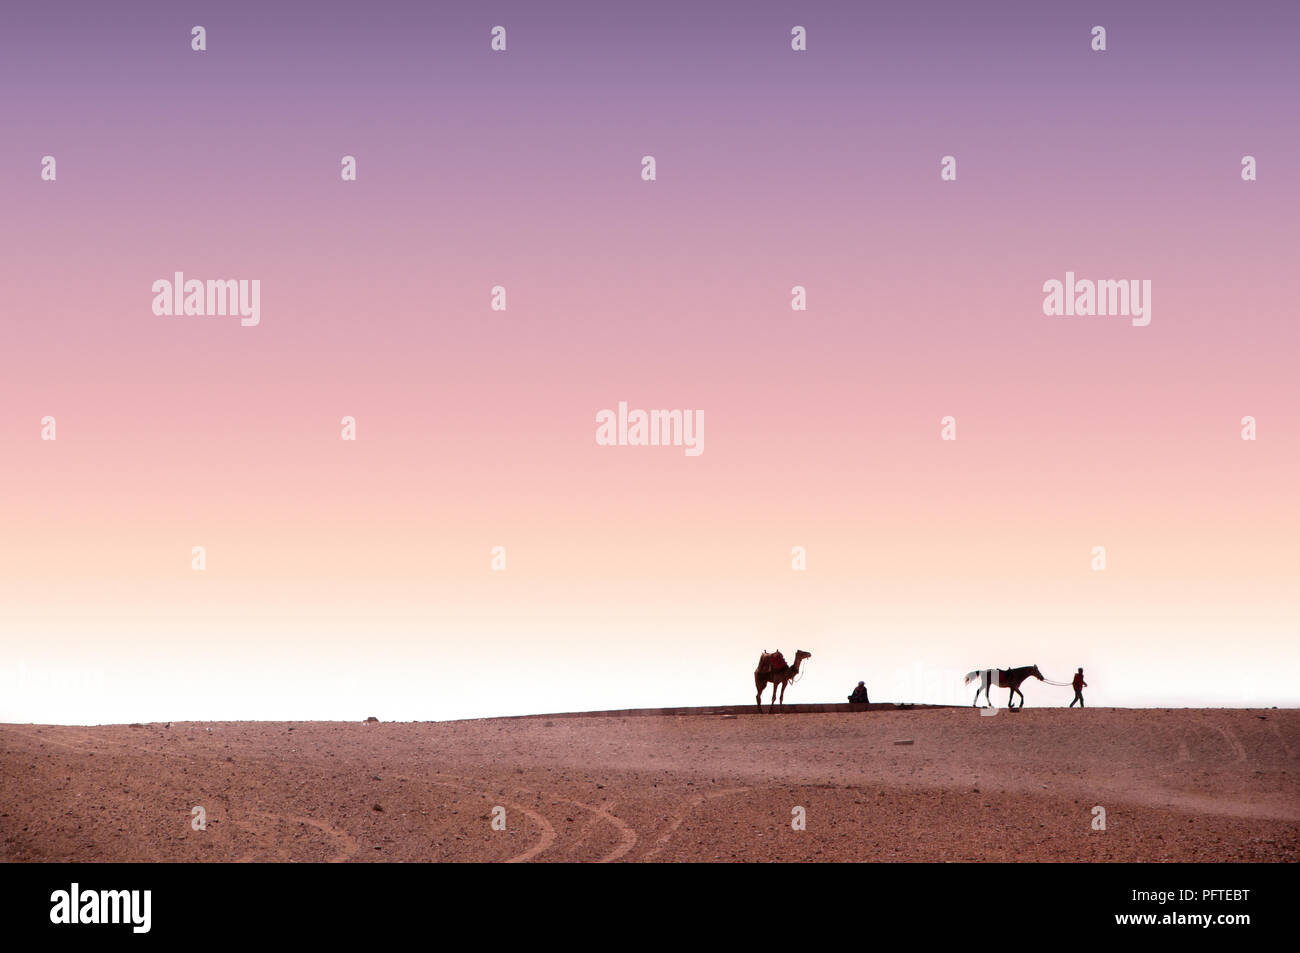 Colorful minimalist landscape of the Sahara desert with silhouettes of camel, horse and man over pink and purple sunset sky, Egypt, Africa - Stock Image